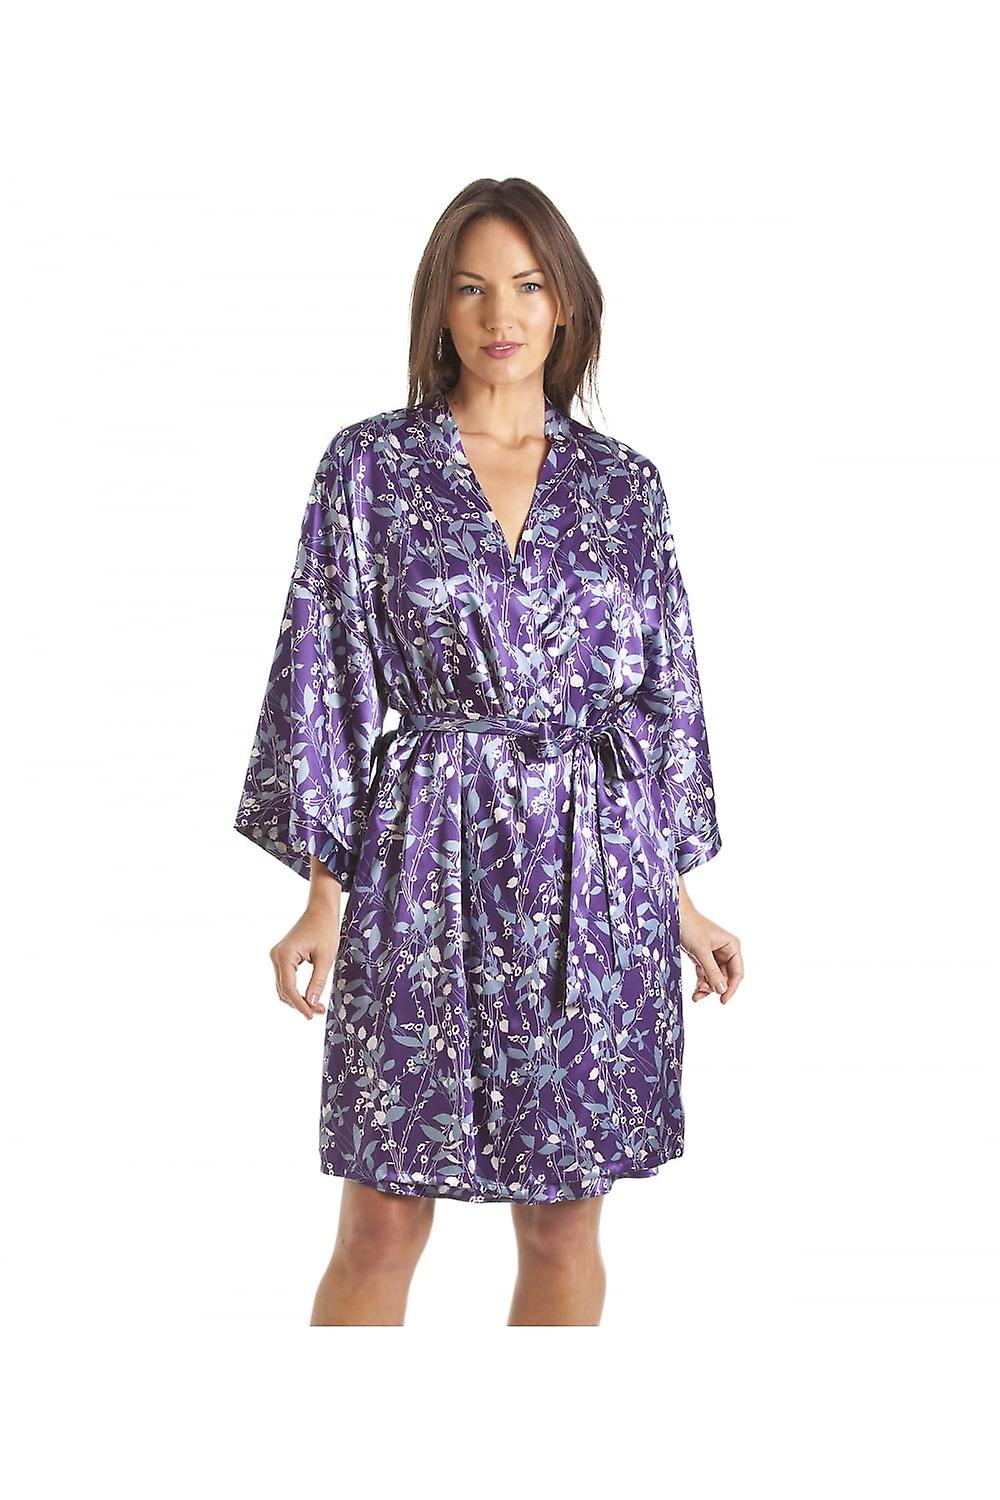 Camille Luxury White And Blue Floral Print Purple Satin Wrap